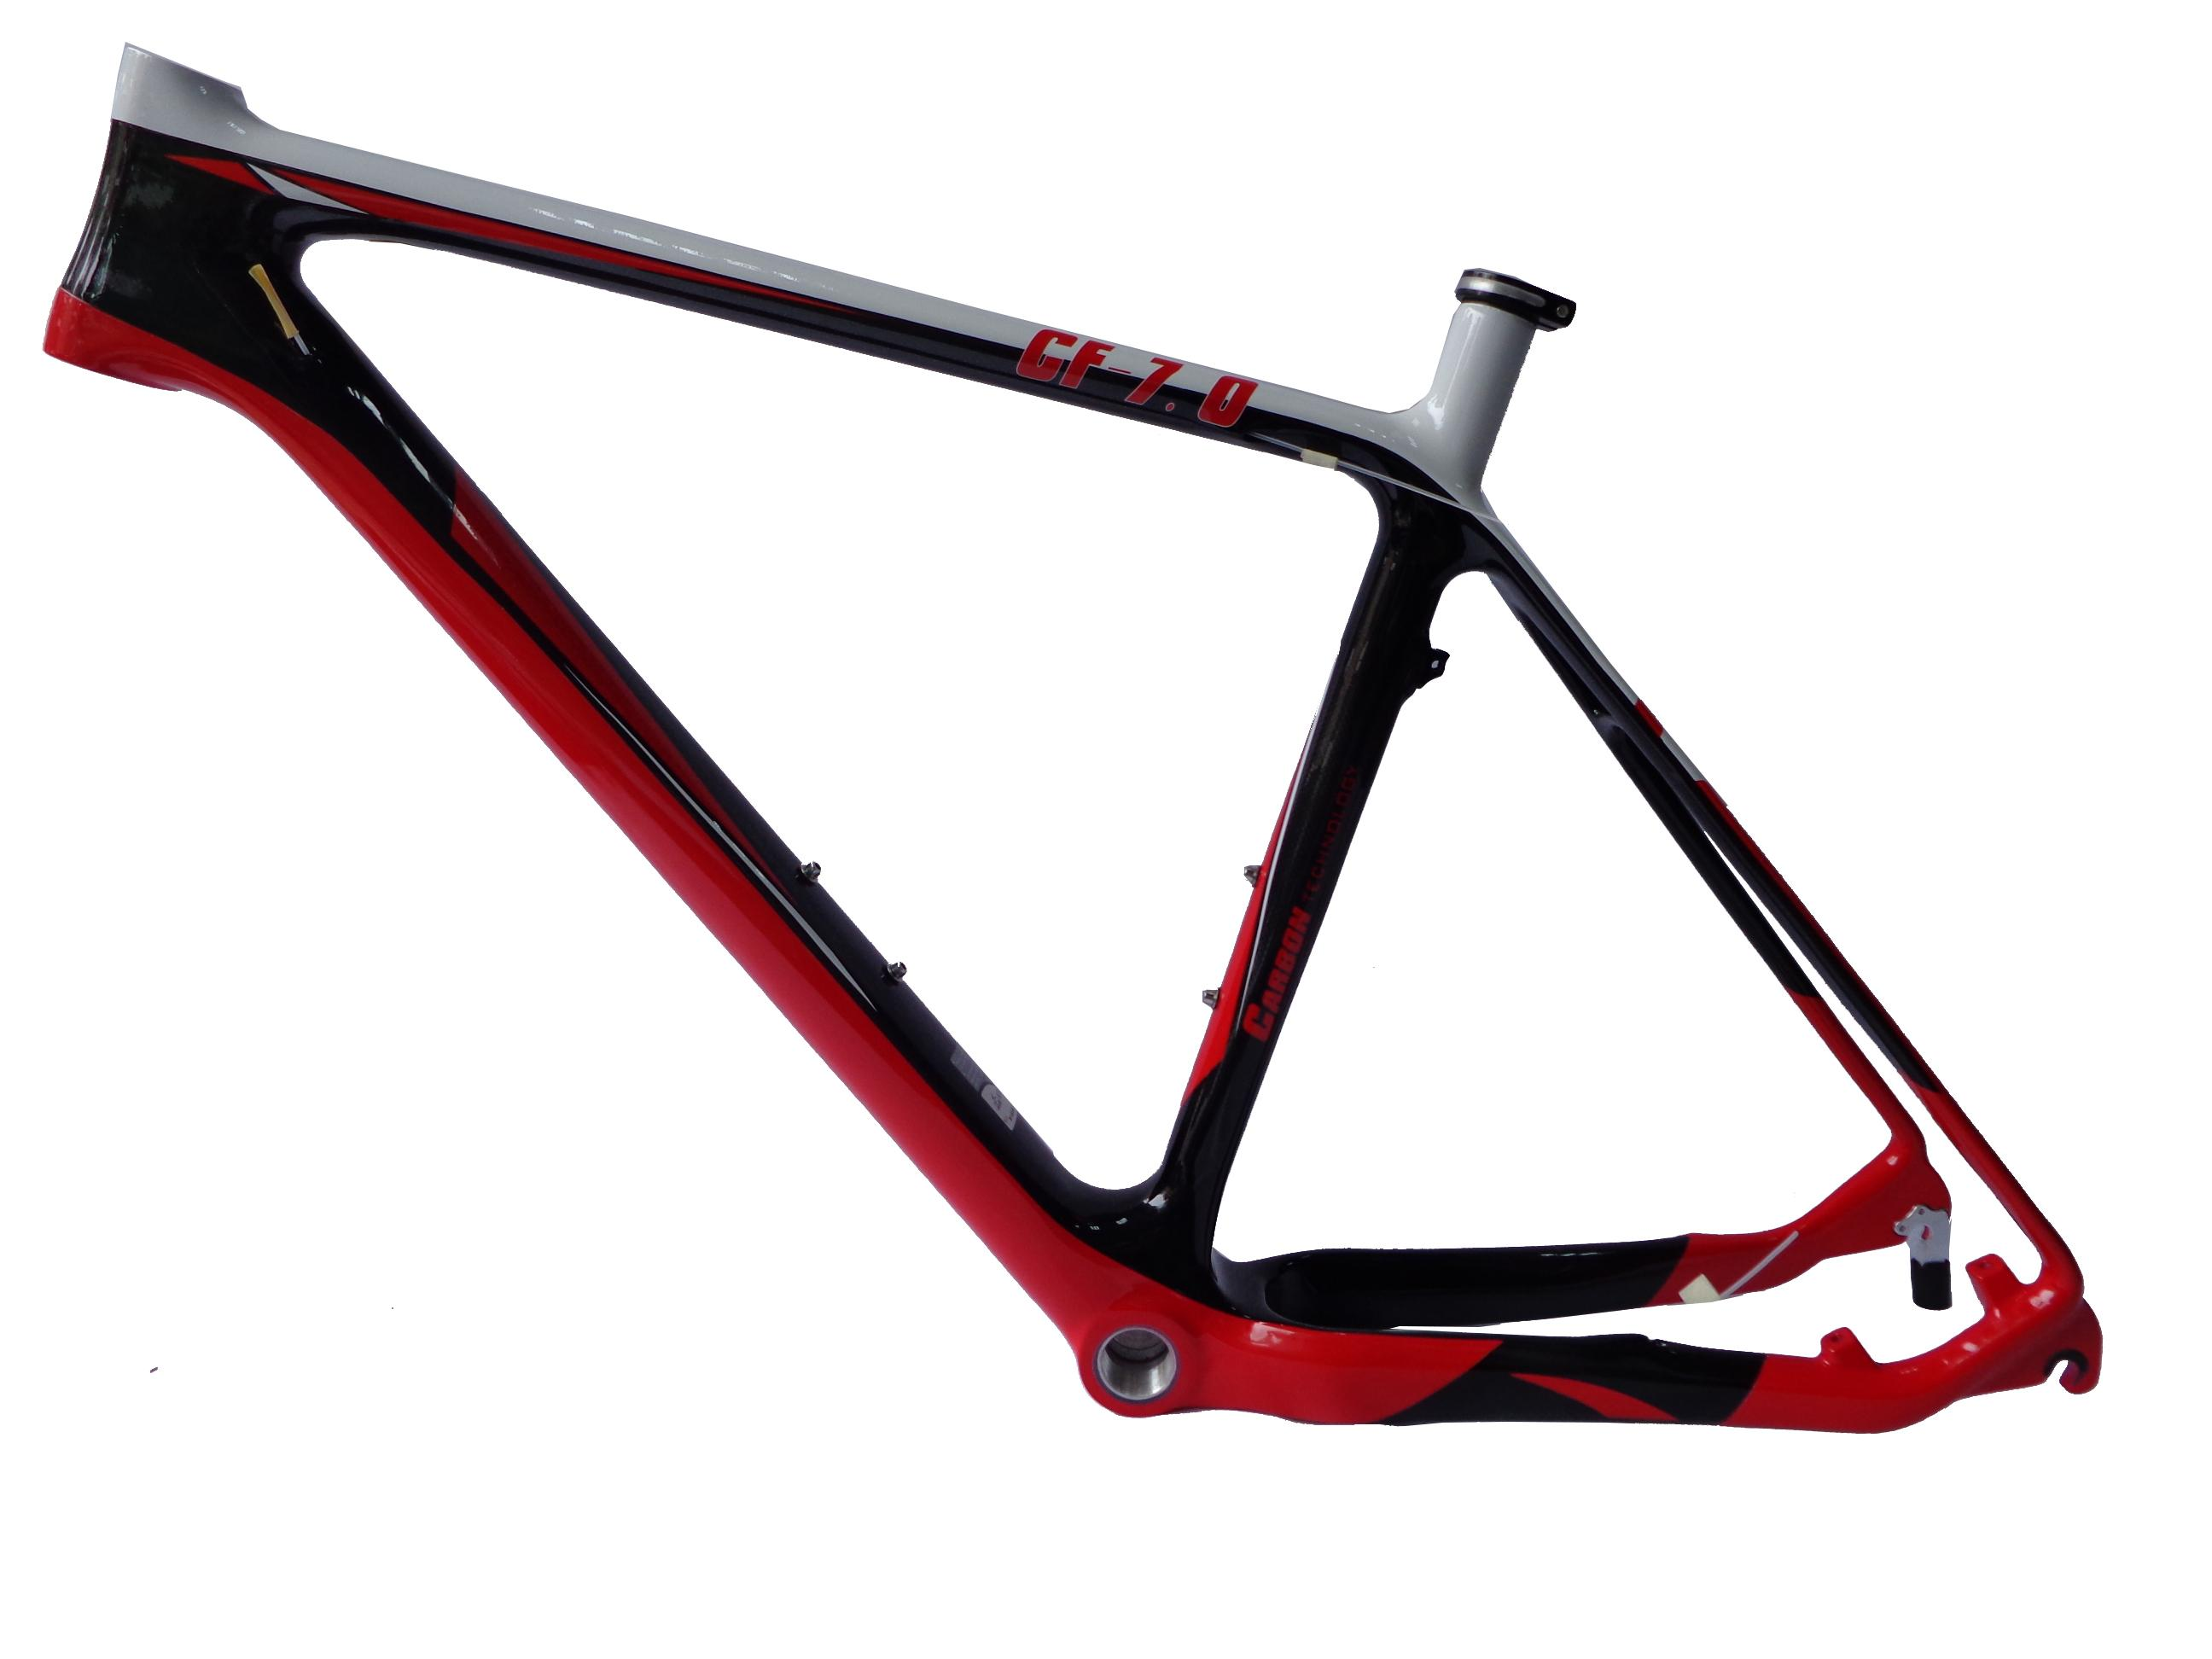 MB207 Red Color Painting Carbon Mountain Bike Frame Carbon Fibre Frame  Bicycle Parts Cycling Accessories Bike Frame Road Bike Frames From Neasty,